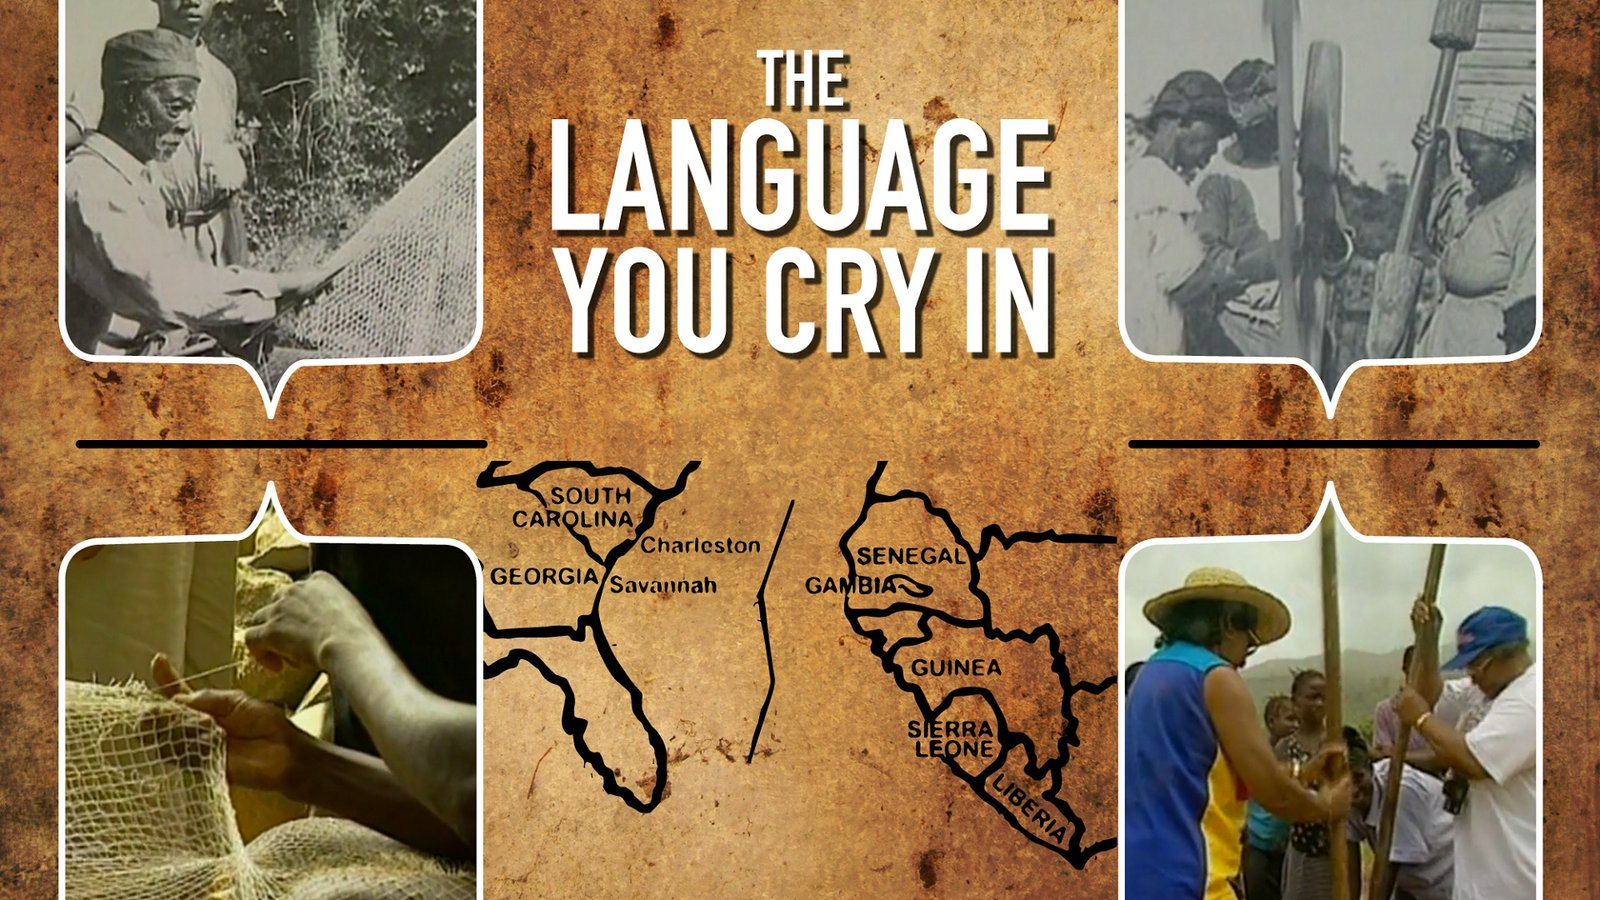 The Language You Cry In